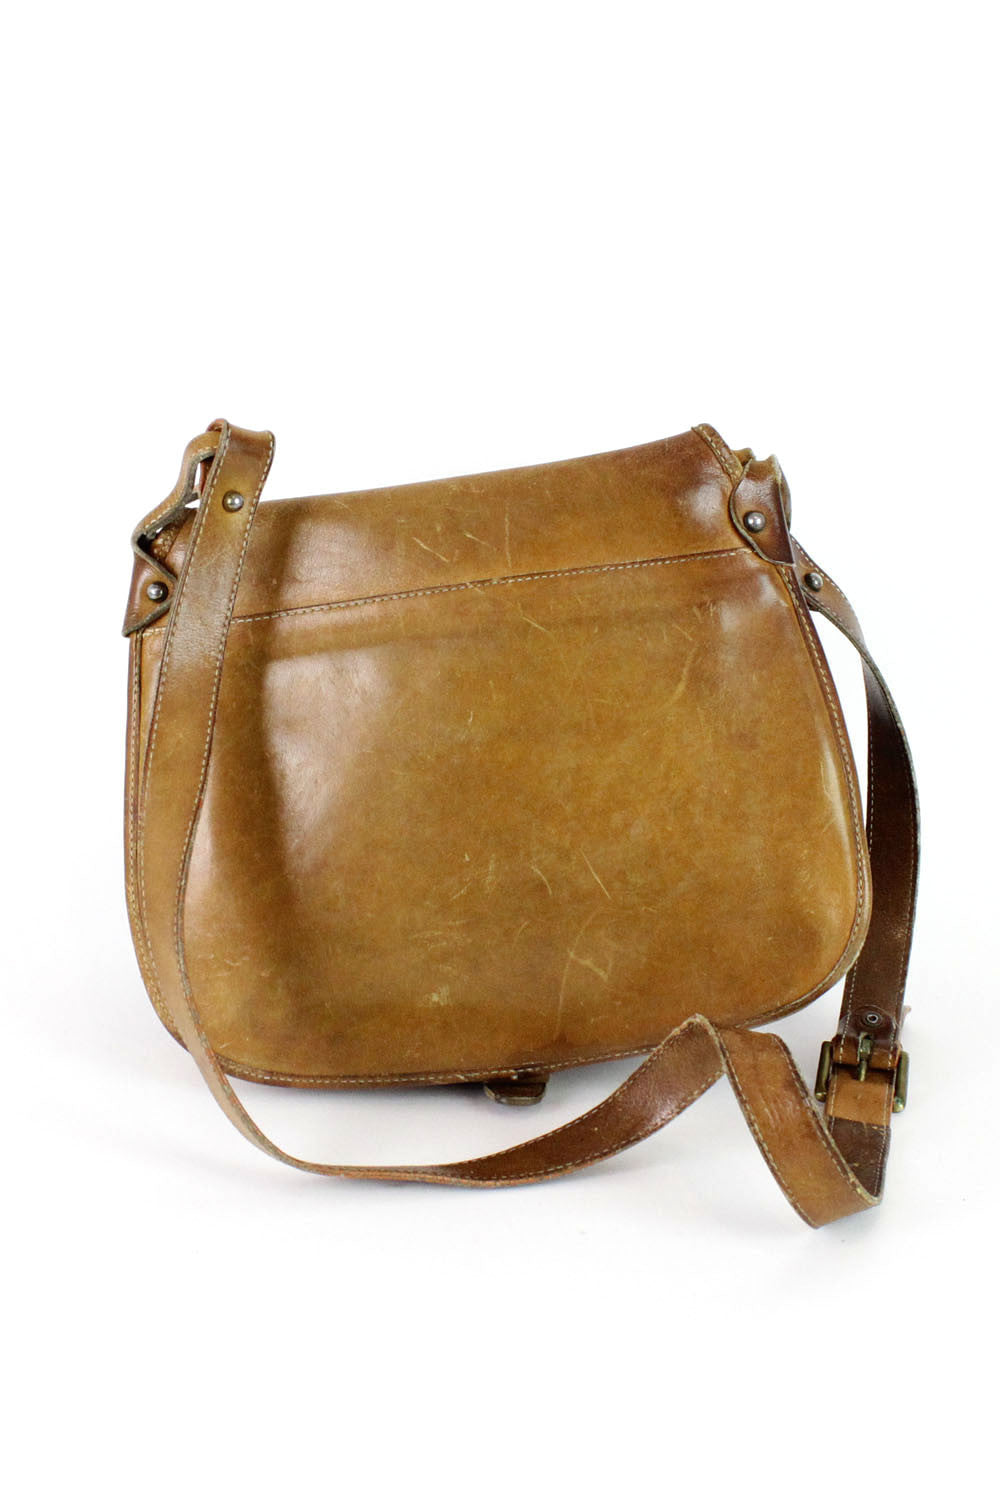 J.G. Hook Honey Leather Saddle Bag